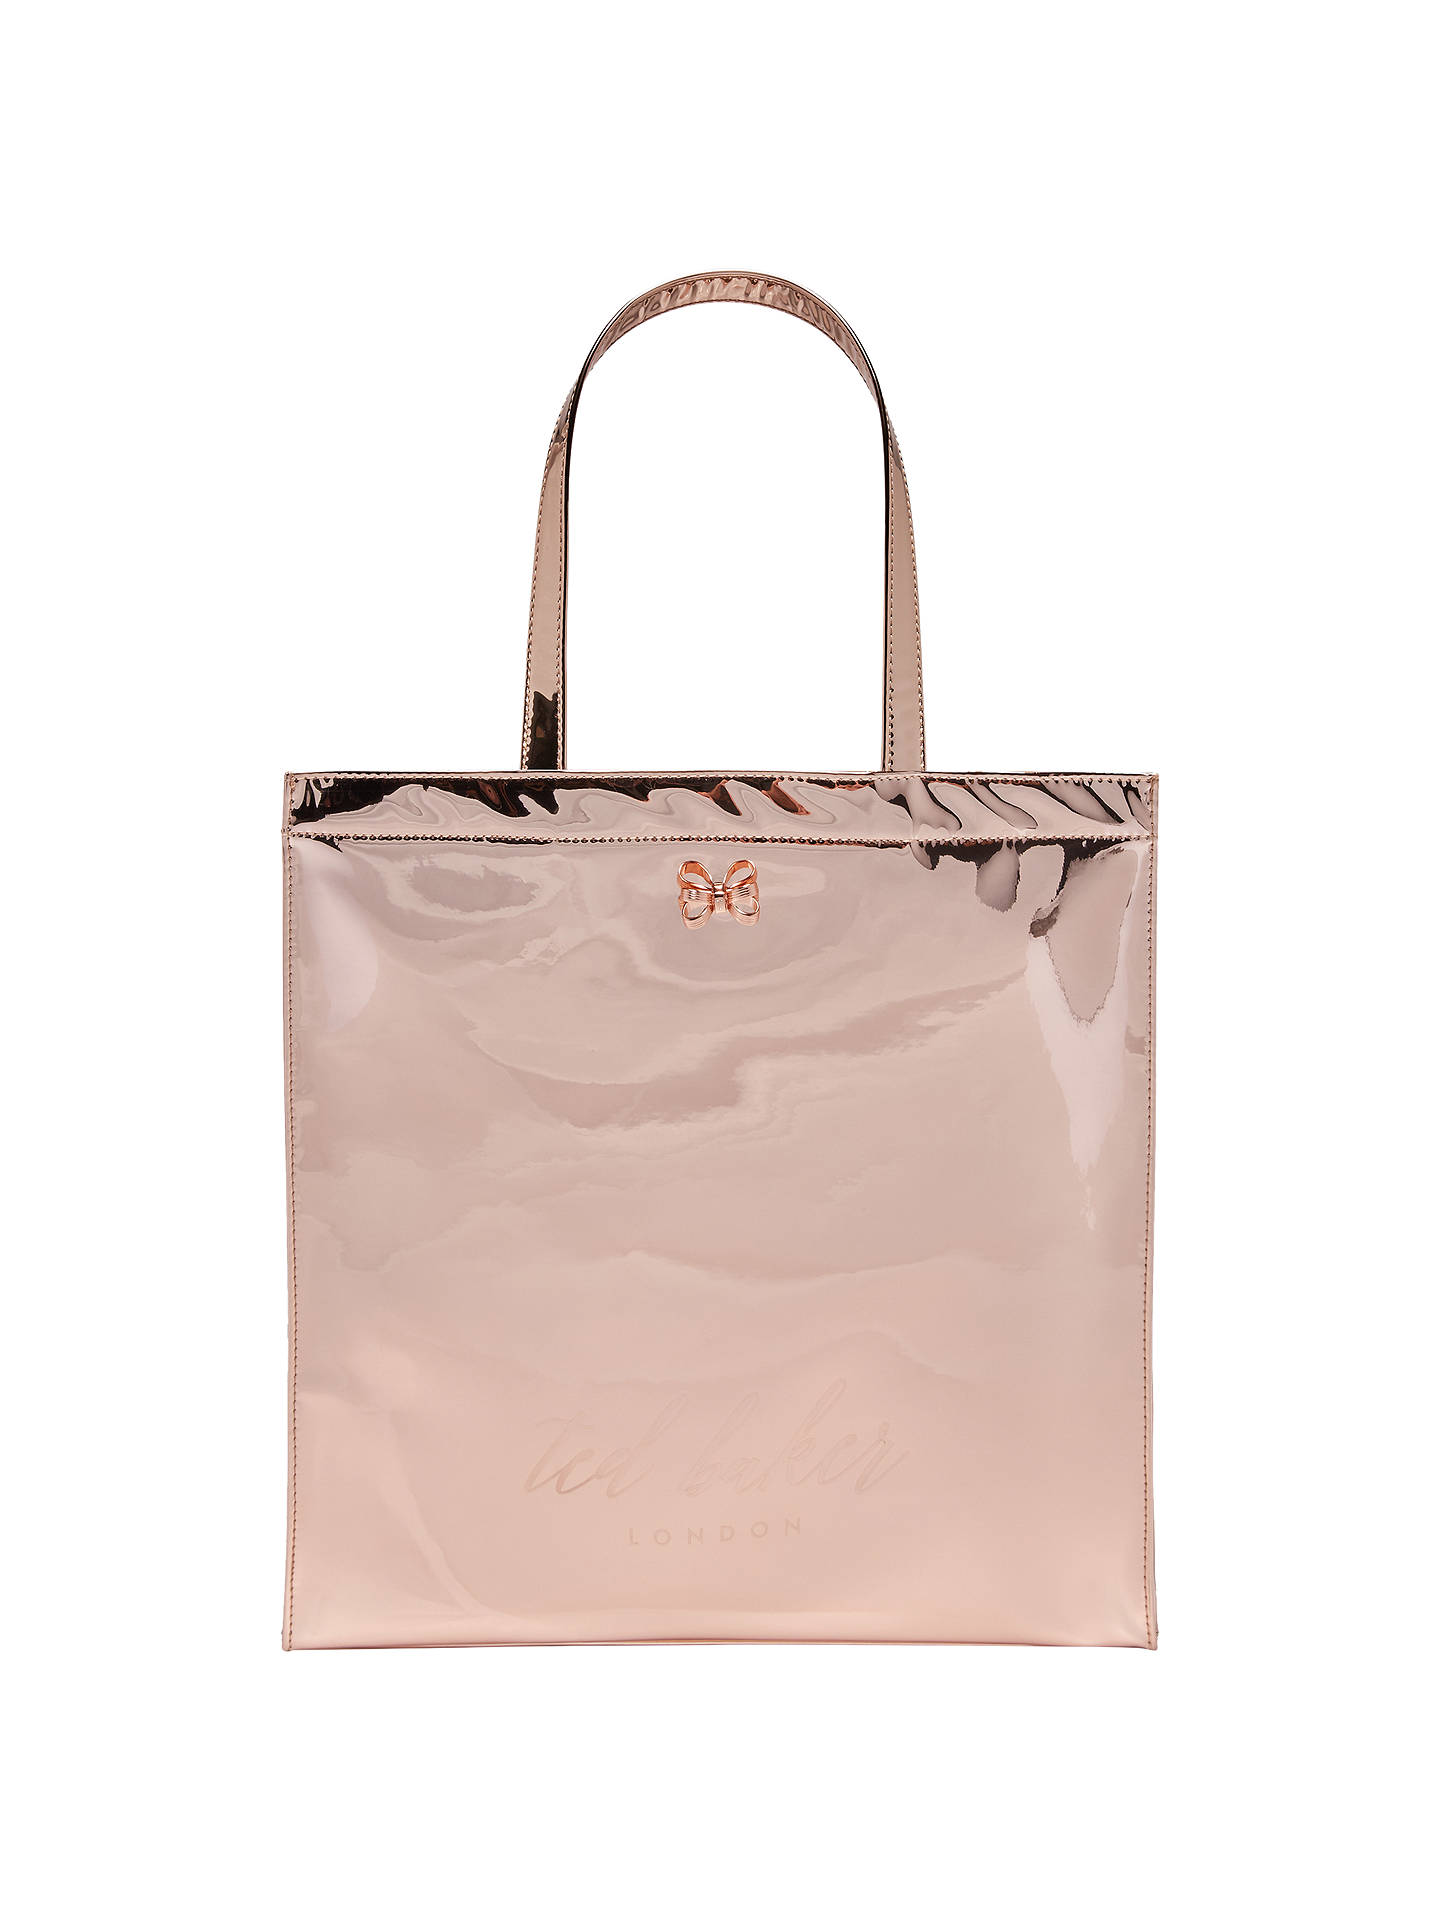 32be9d7a8790 Ted Baker Jencon Mirrored Large Icon Shopper Bag at John Lewis ...